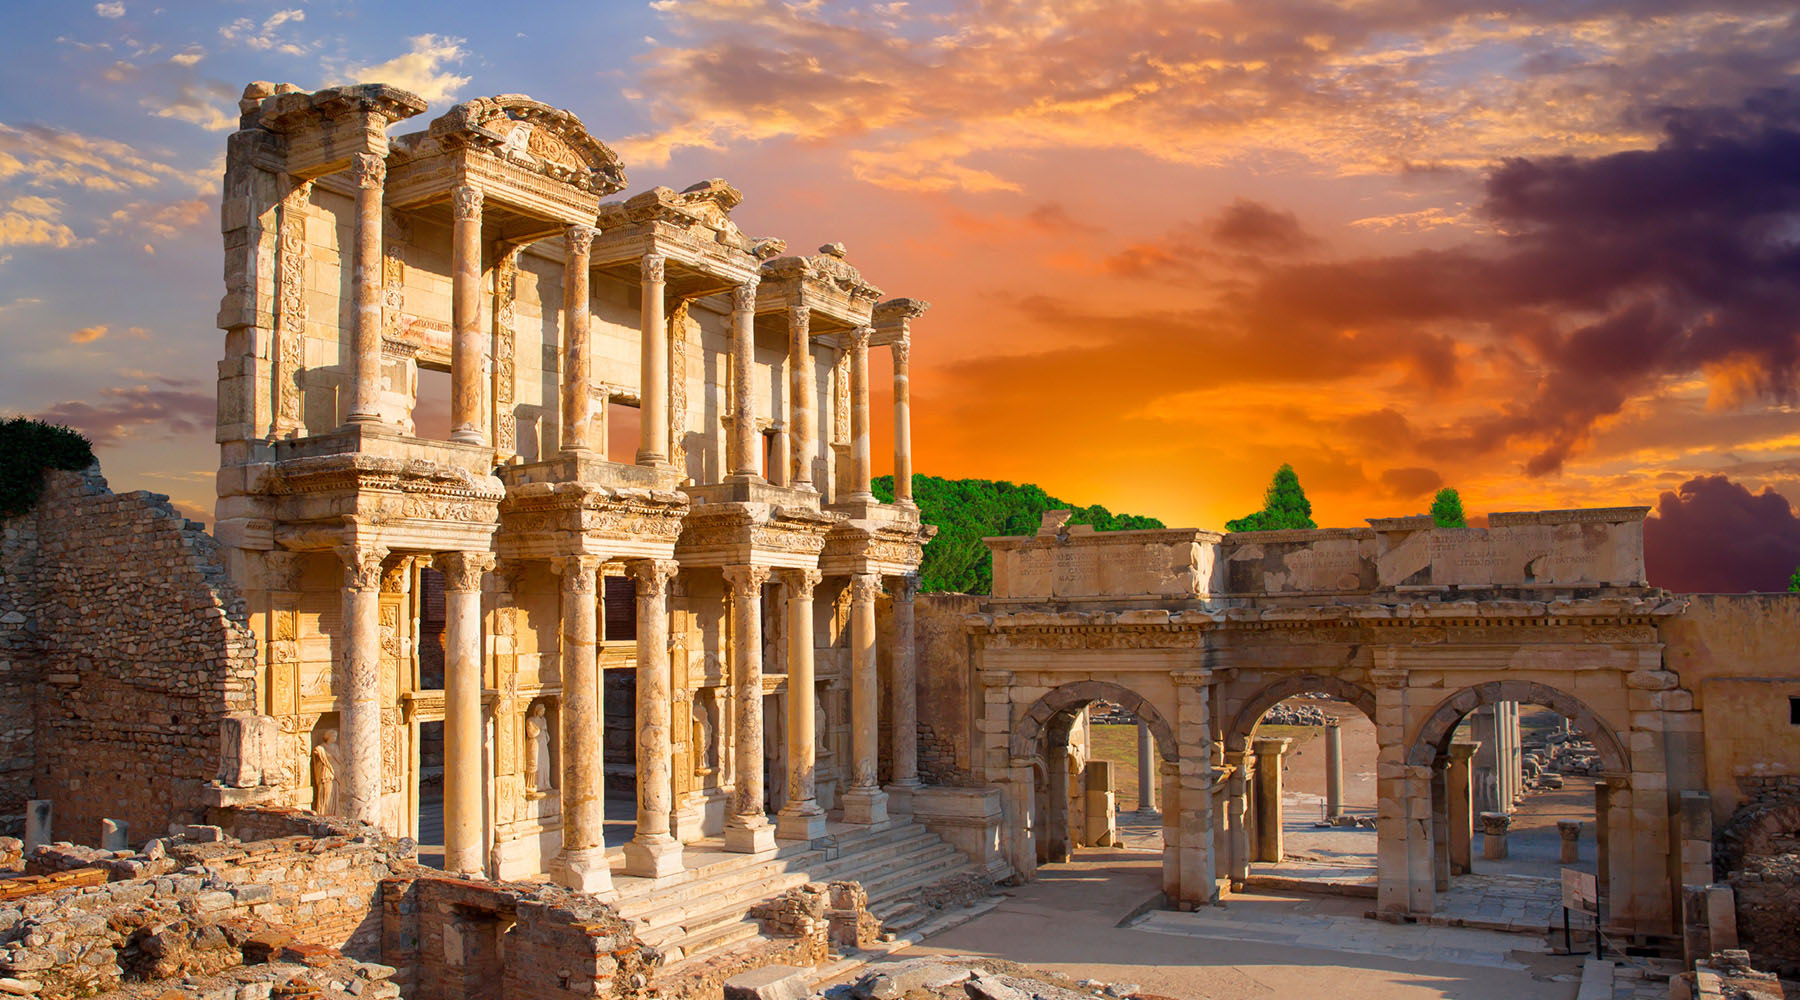 An AzAmazing Adventure in Ephesus